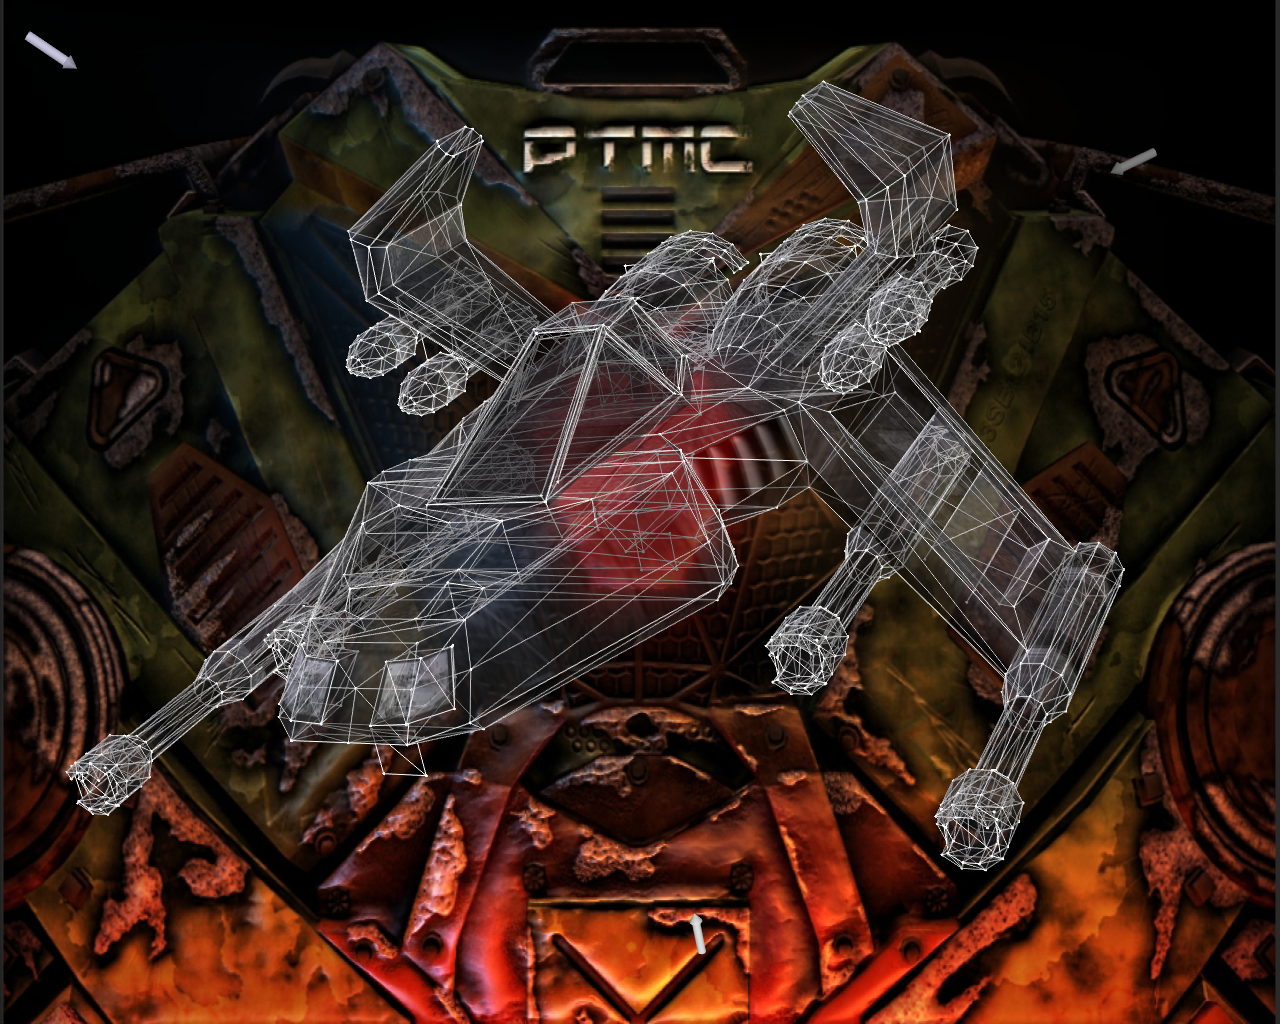 Descent Pyro-GX Transparent Wireframe by 1DeViLiShDuDe